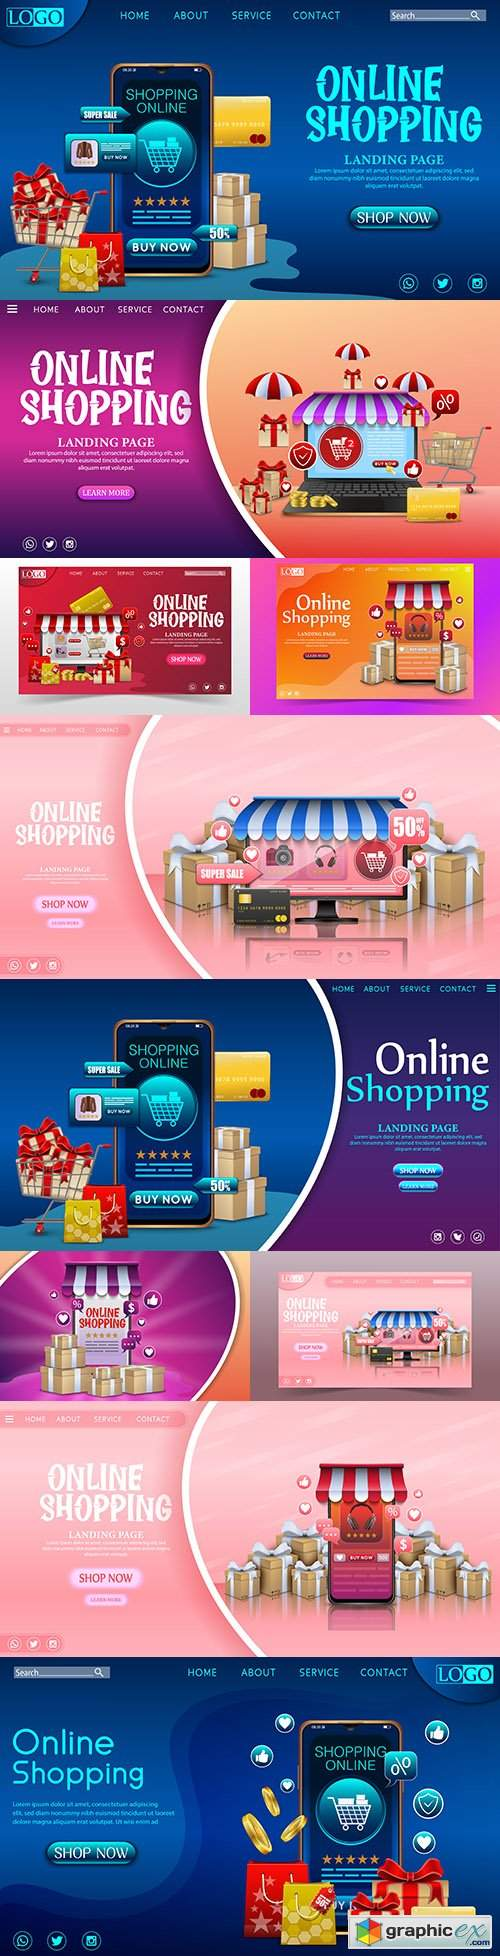 Online store on mobile app with gifts design concept